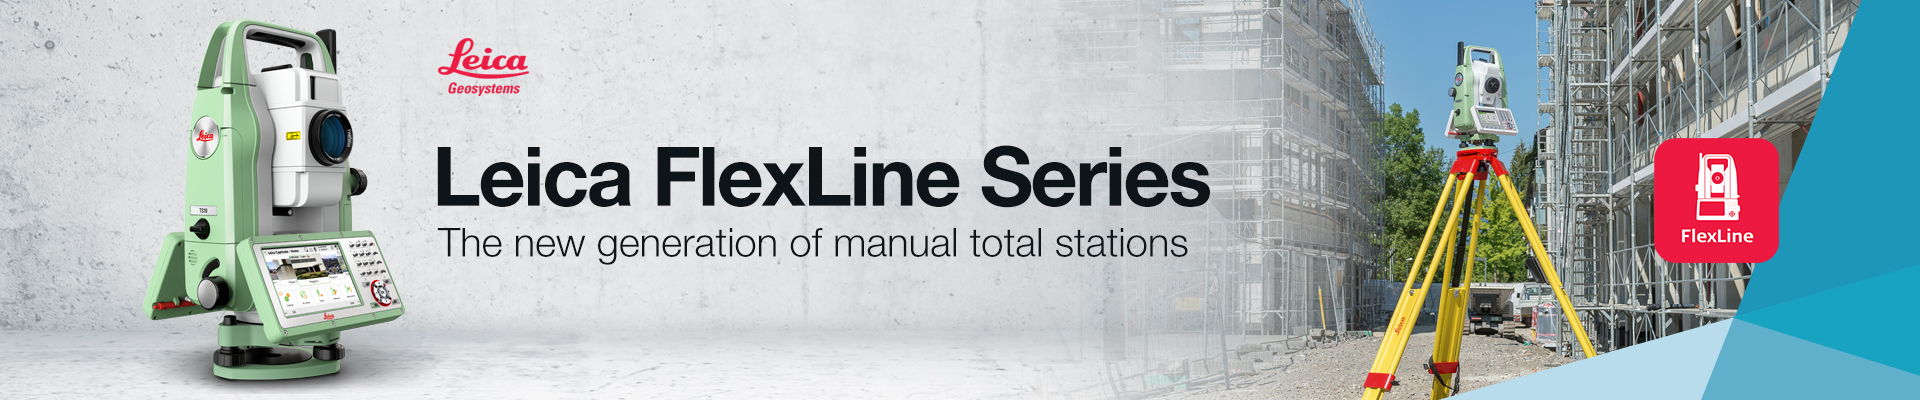 Leica Flexline Manual Total Stations